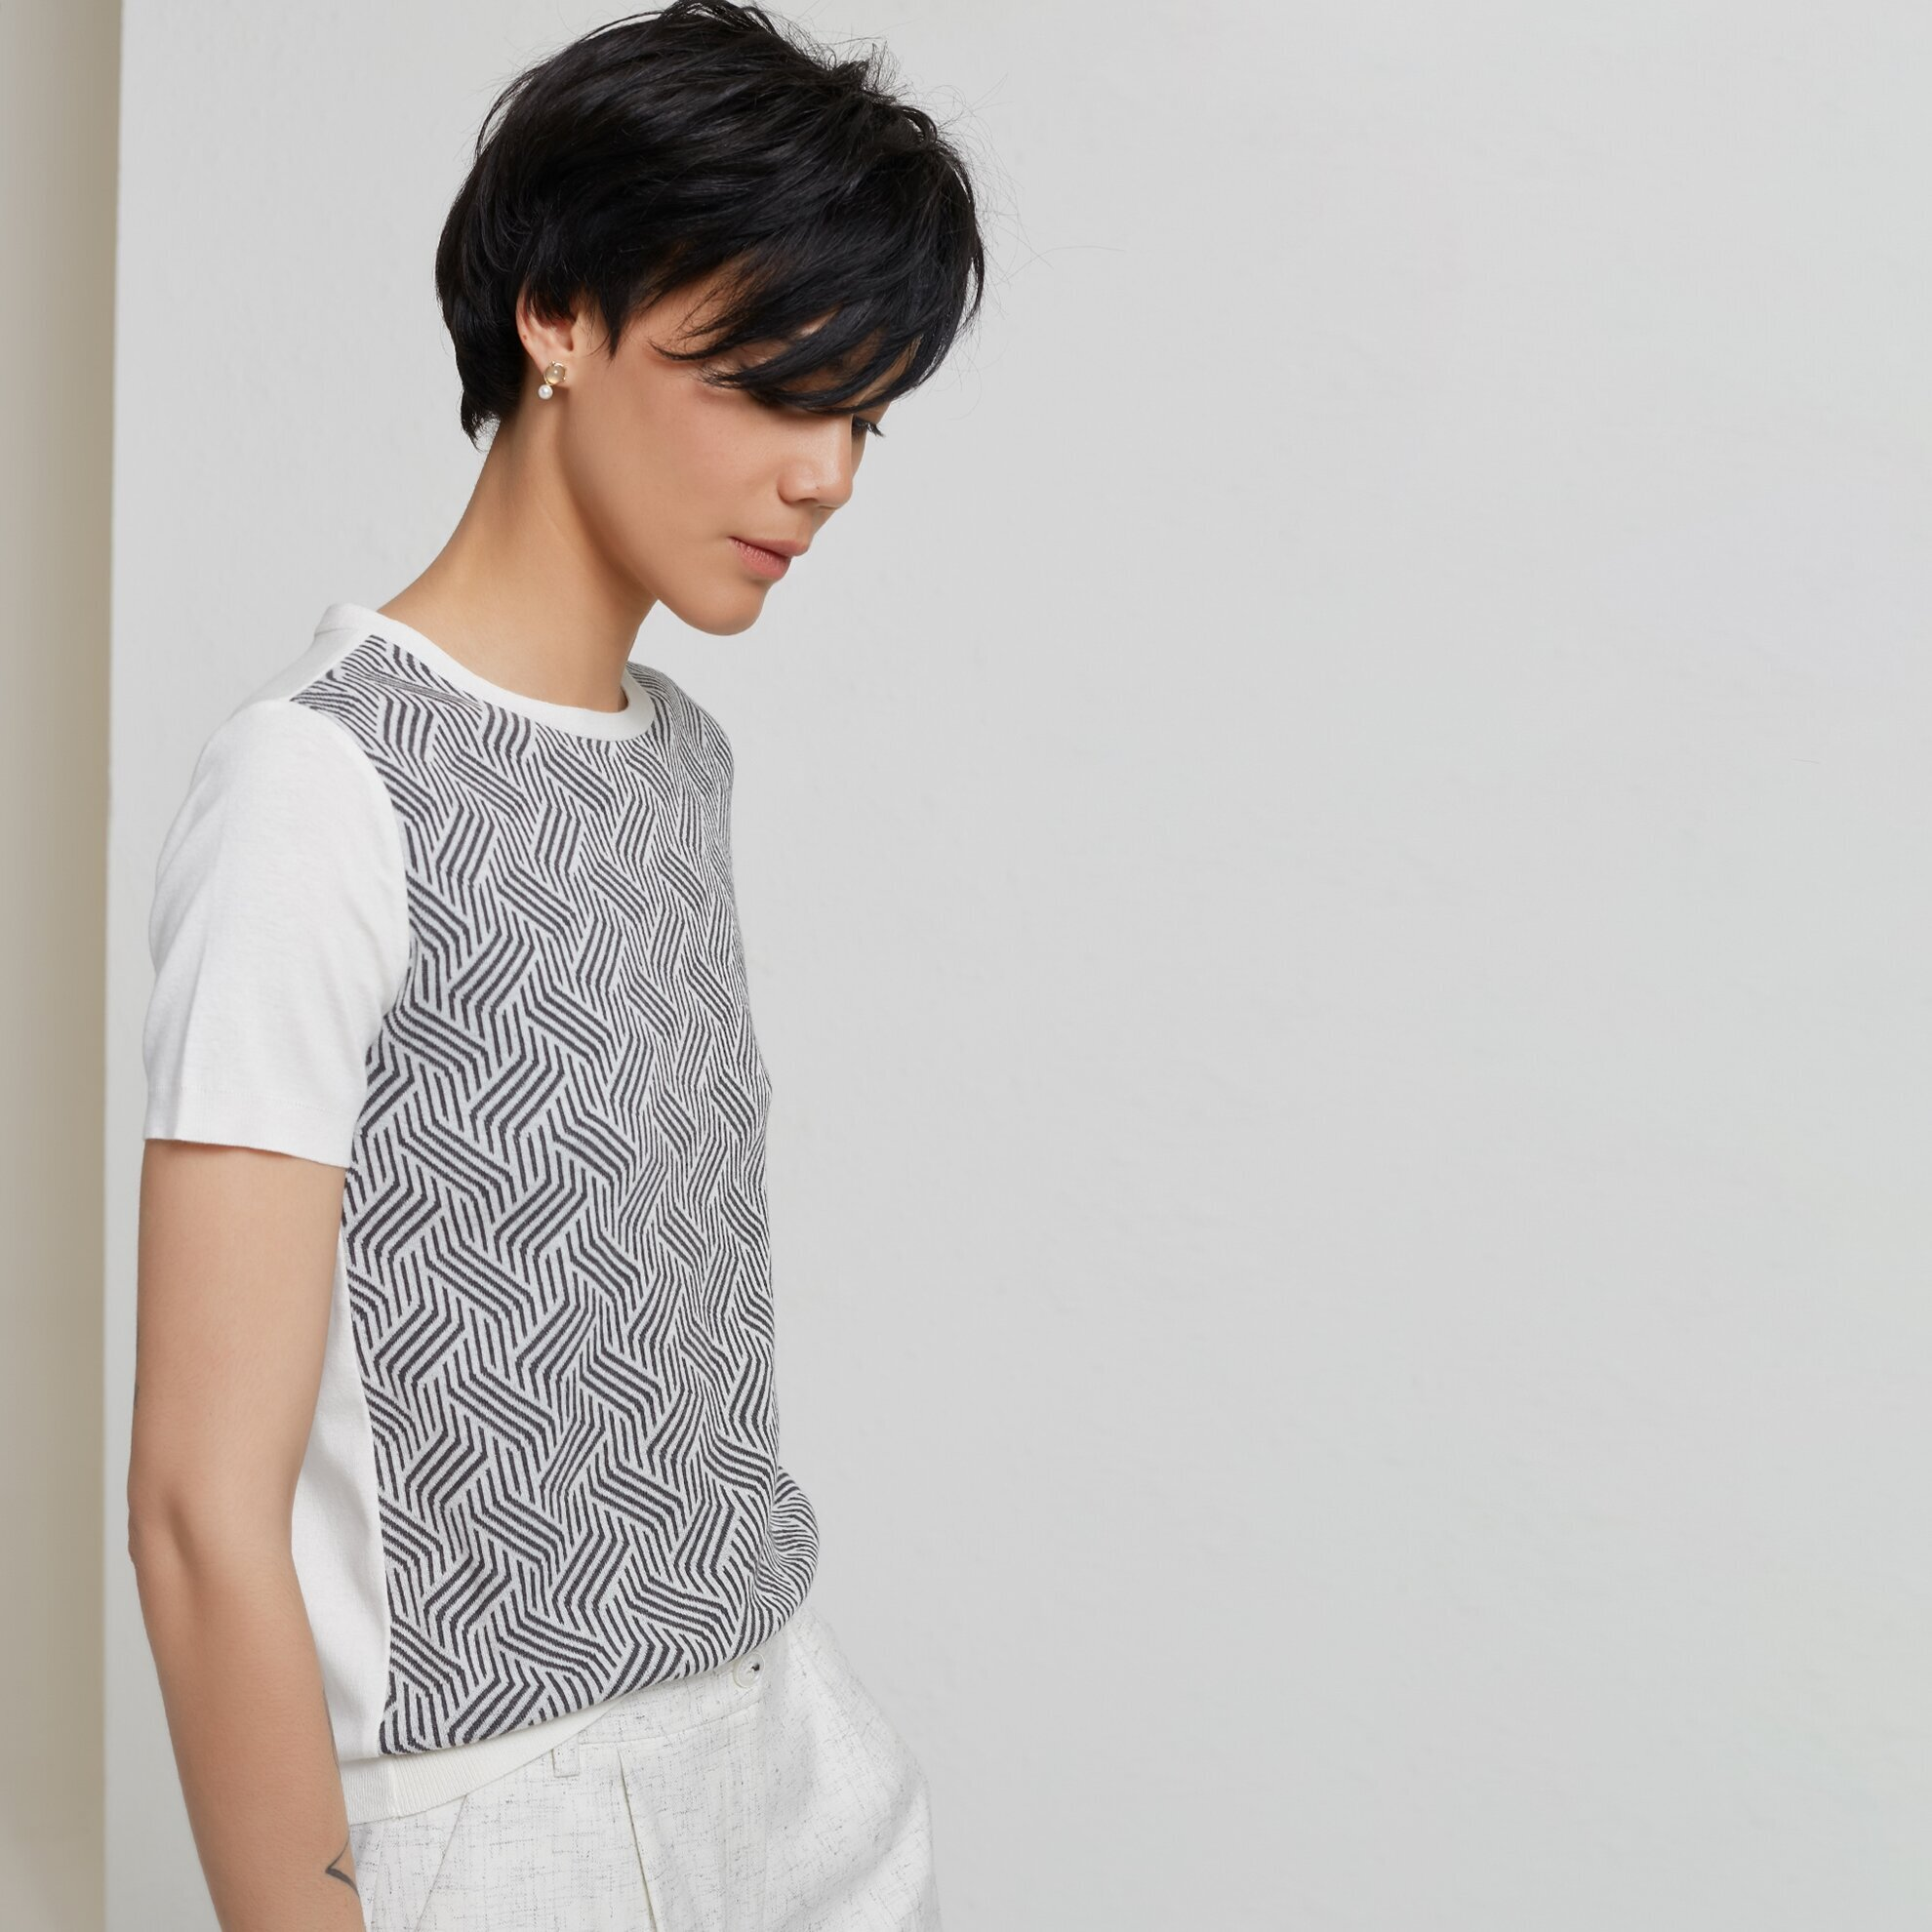 Jaquard Patterned Short Sleeve Knitwear